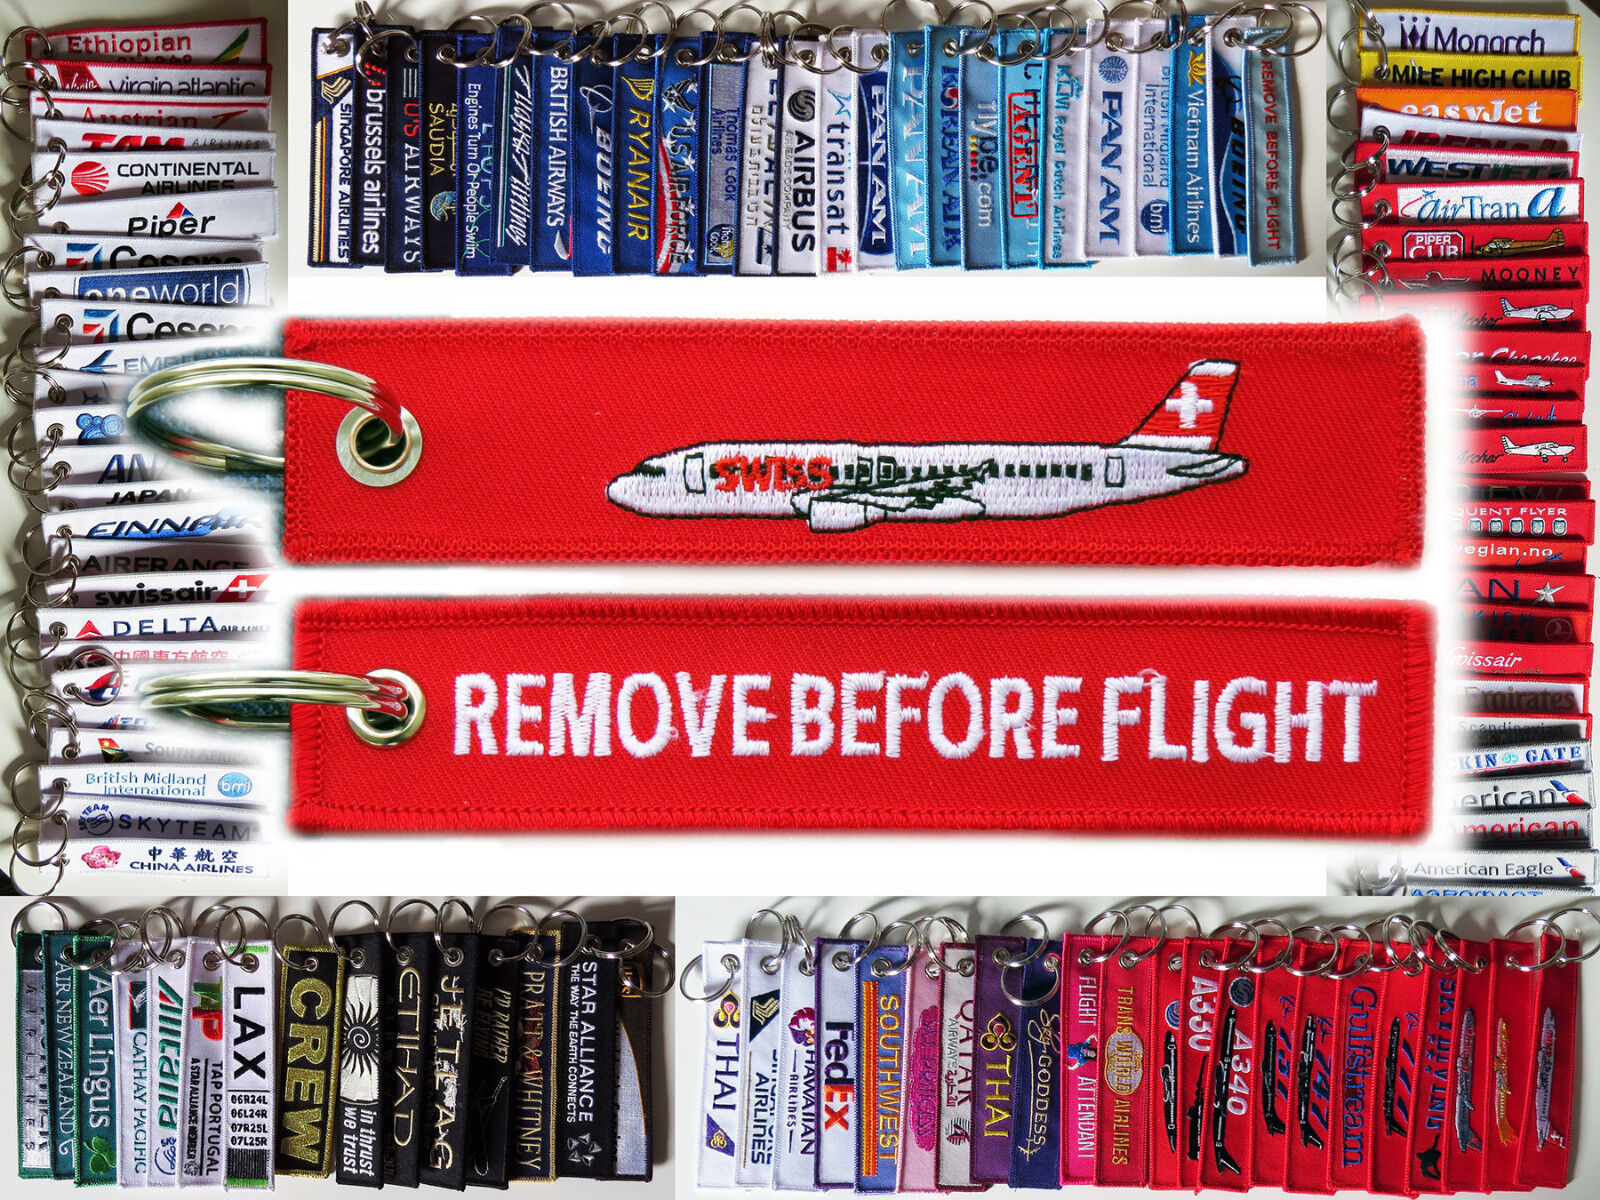 Keyring SWISS INTERNATIONAL AIRLINES A320 Plane Remove Before Flight tag Pilot